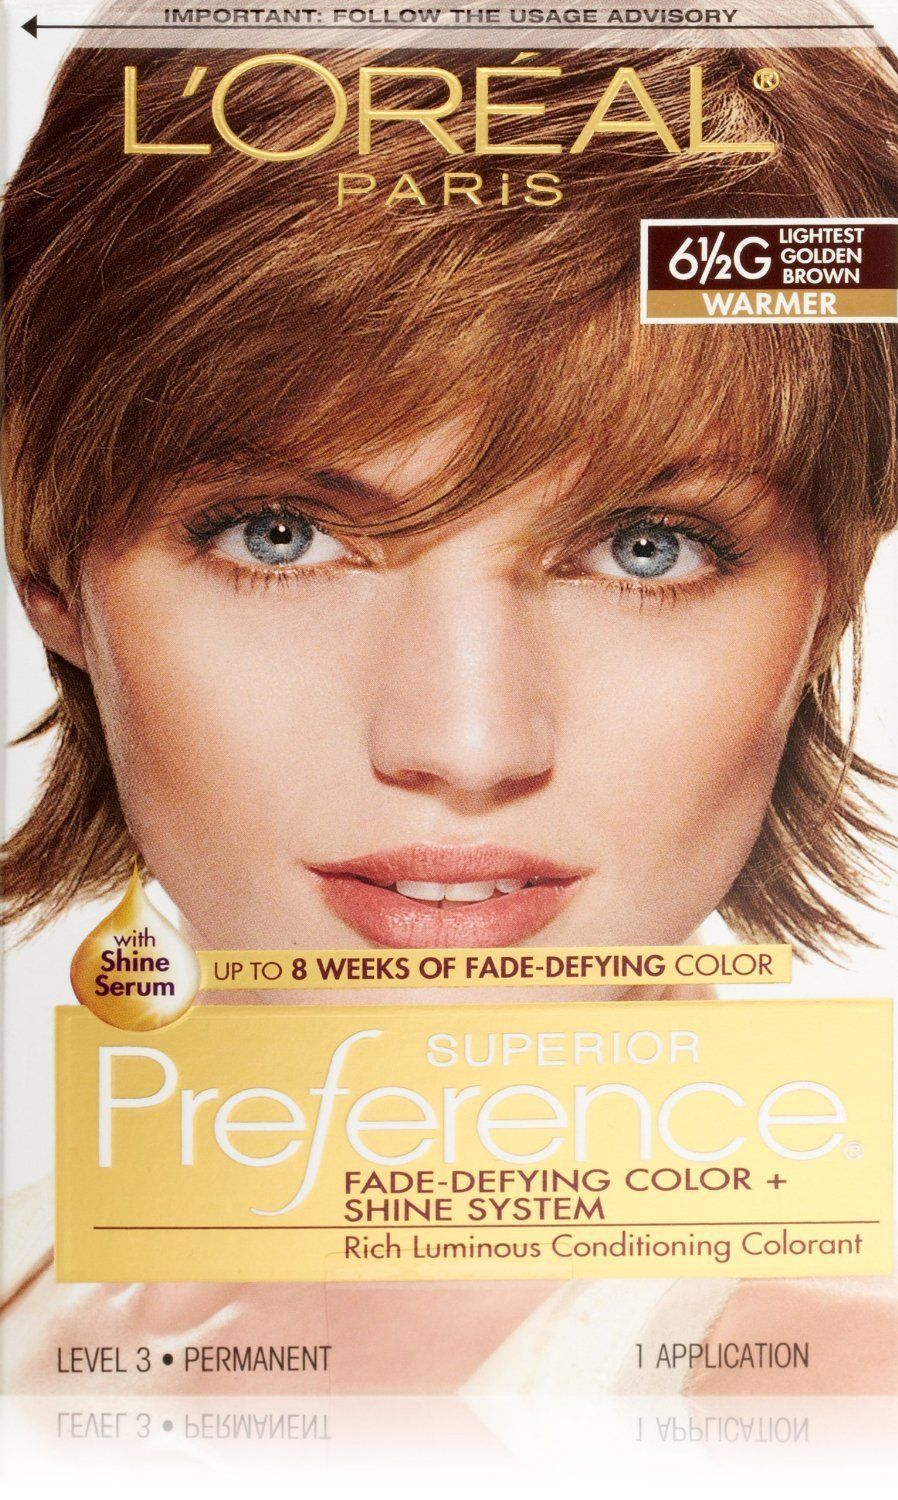 Loreal Preference 65g Lightest Golden Brown Products Pinterest